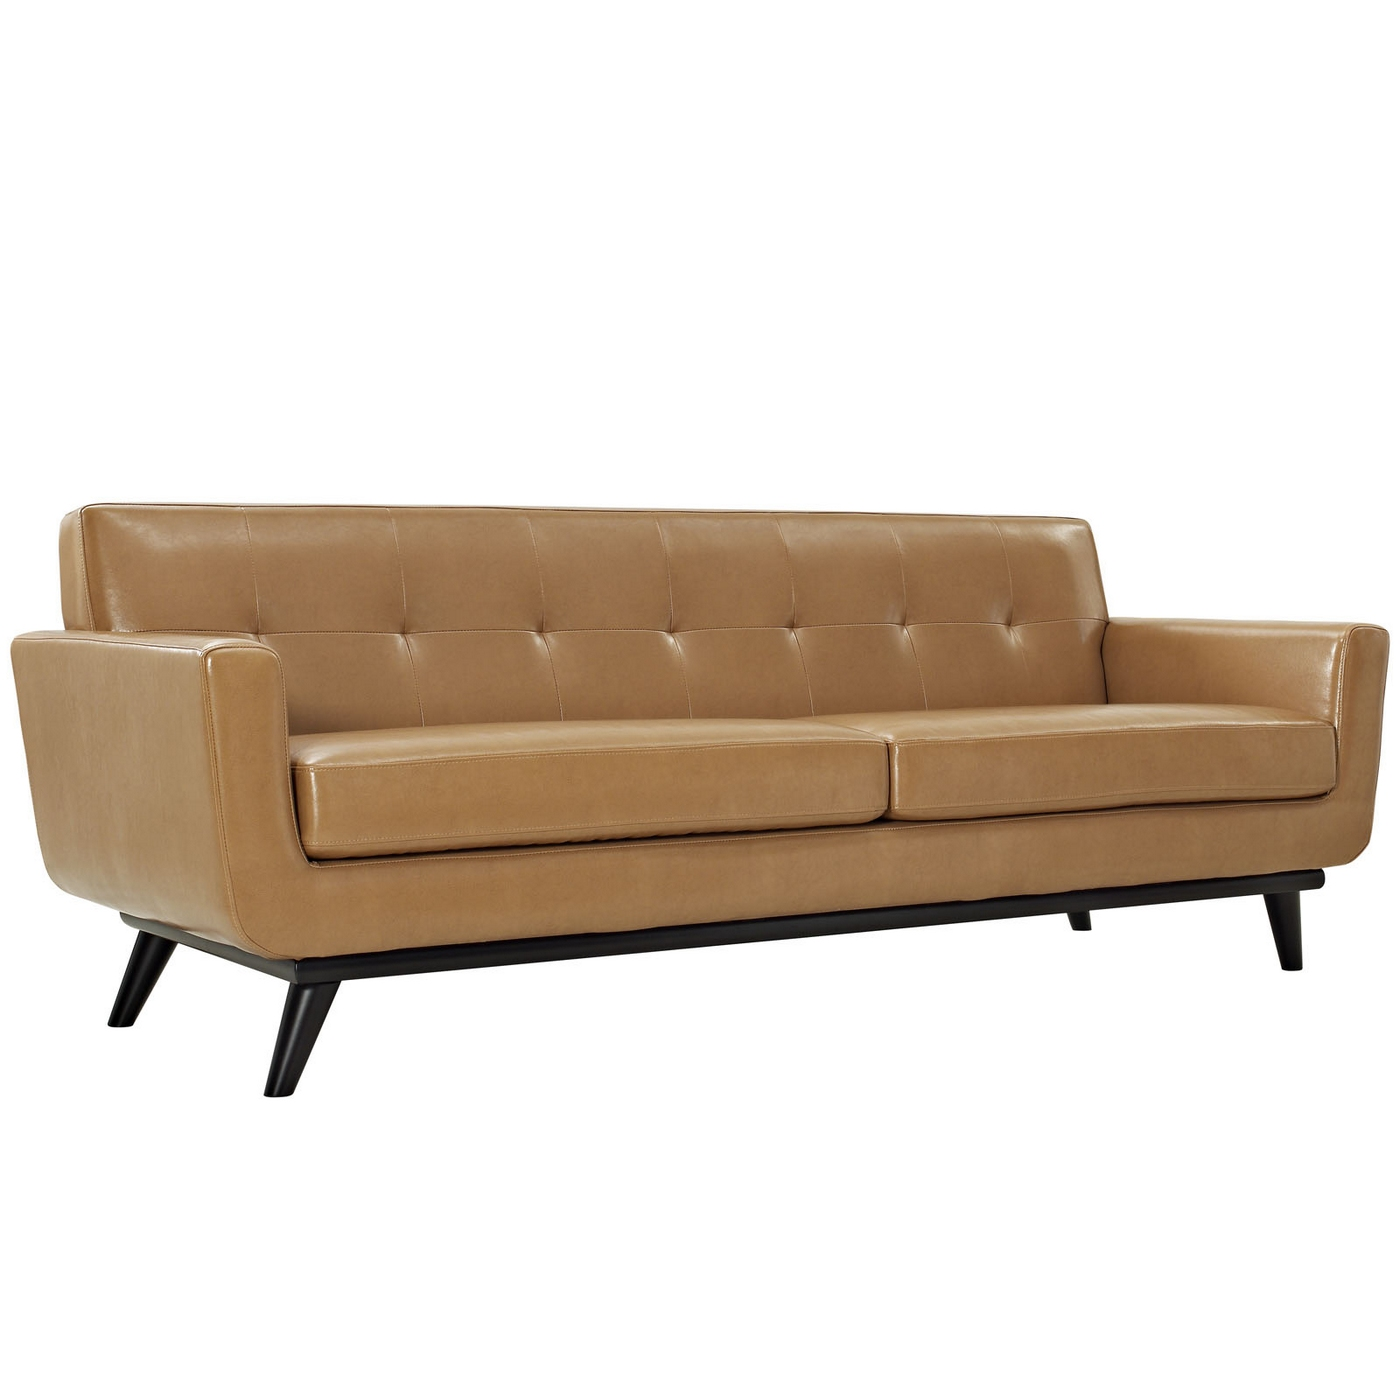 Engage Modern Bonded Leather Sofa With Button Tufted Accents Tan